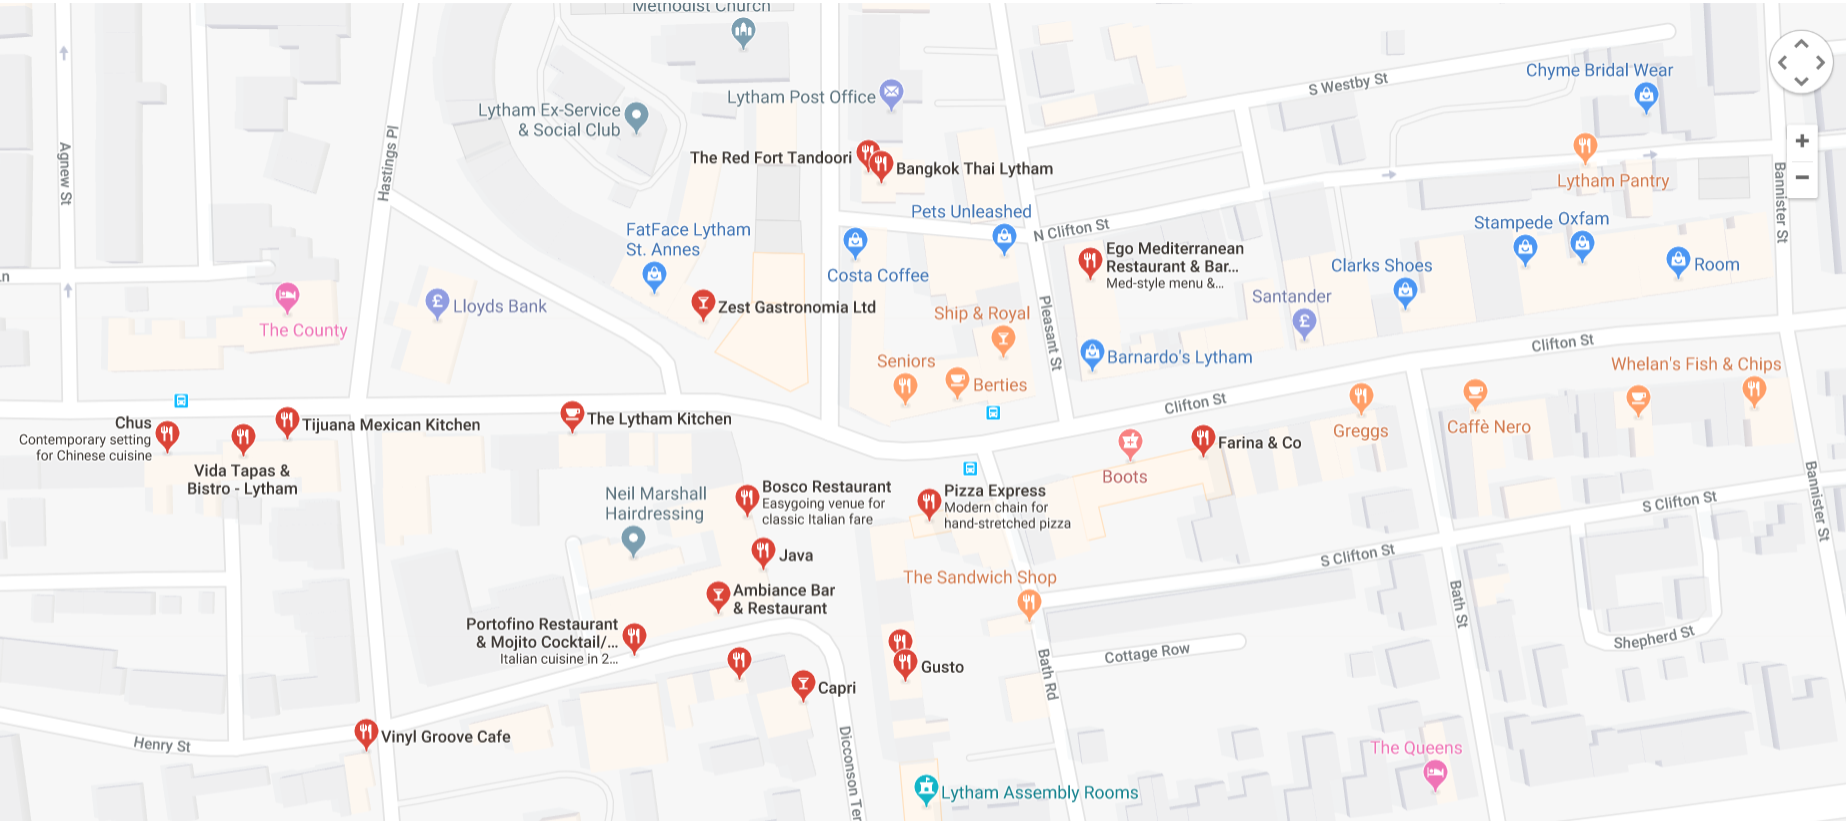 Here is just a small selection of the restaurants, bistros, cafes and bars in Lytham. There are plenty more to choose from!